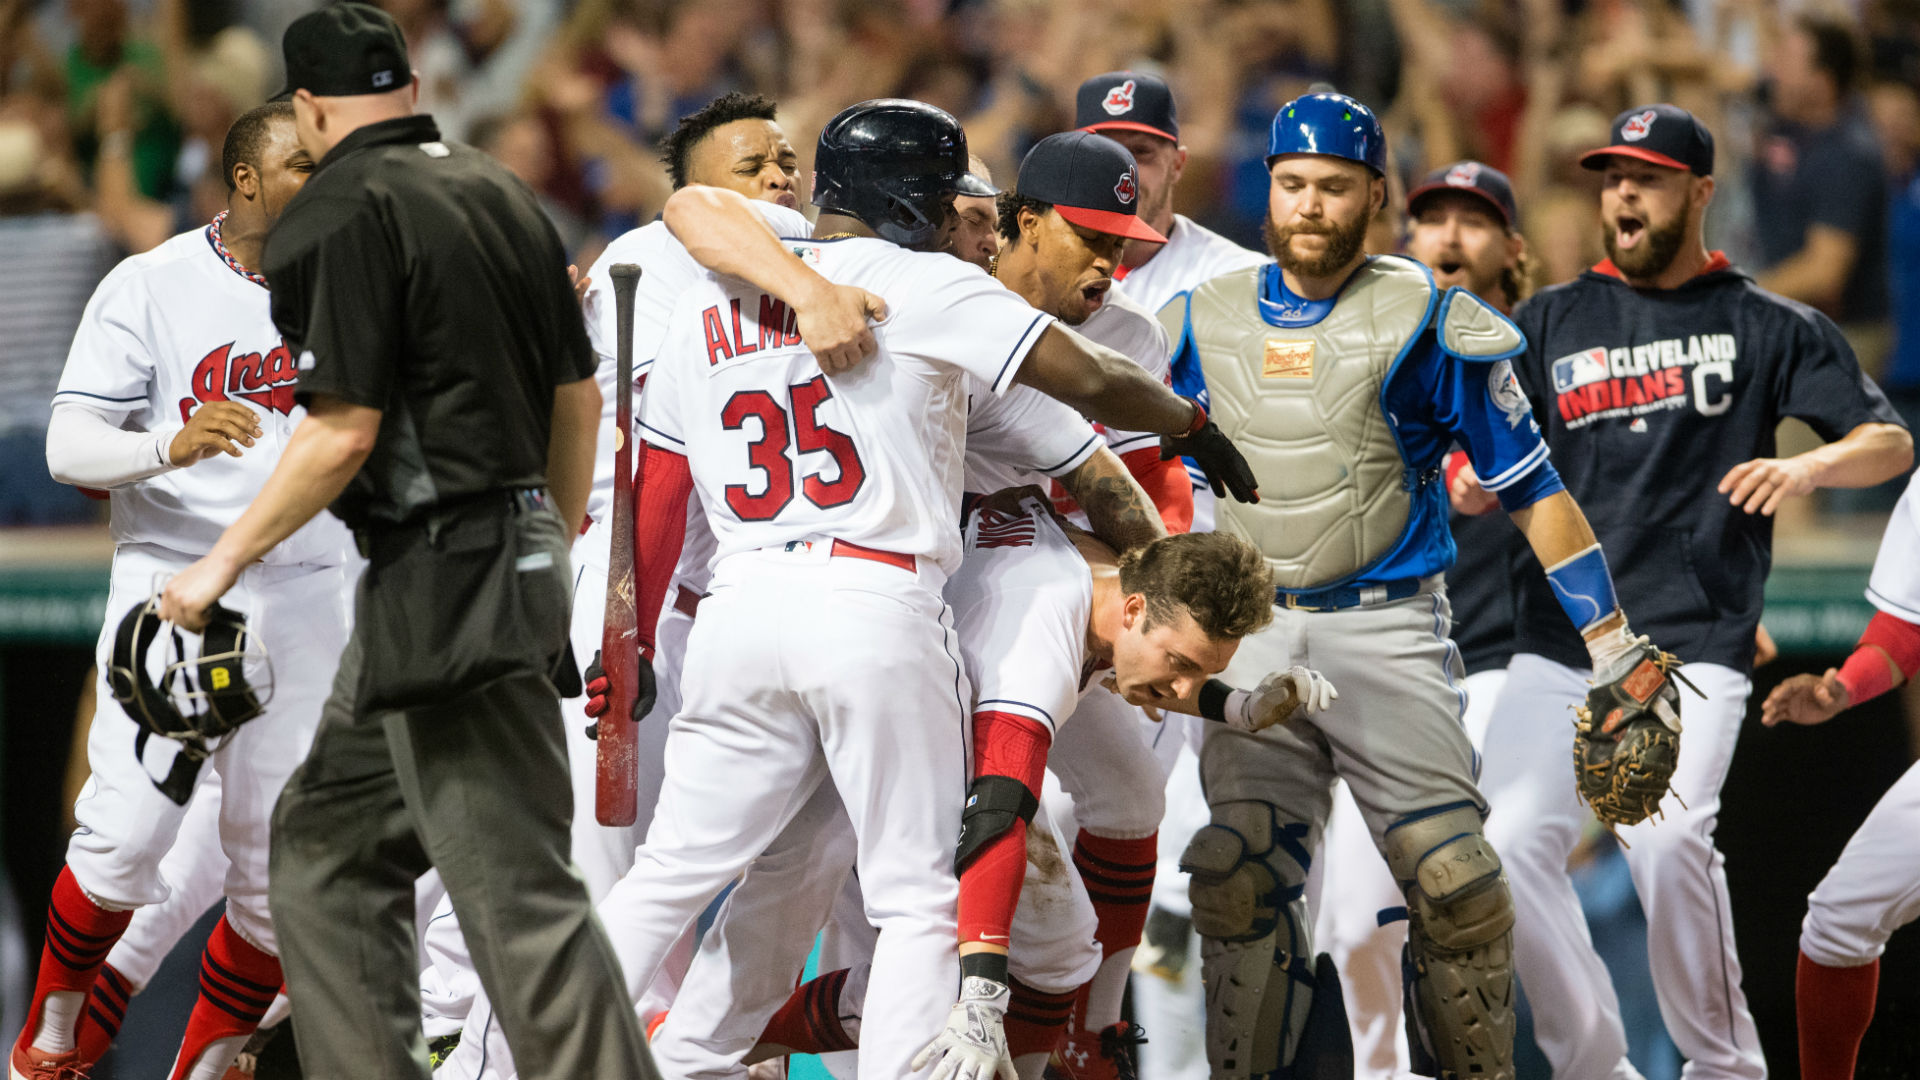 Tyler-naquin-hits-walk-off-inside-the-park-home-run_2h31815048oe17pdhwq64sfli